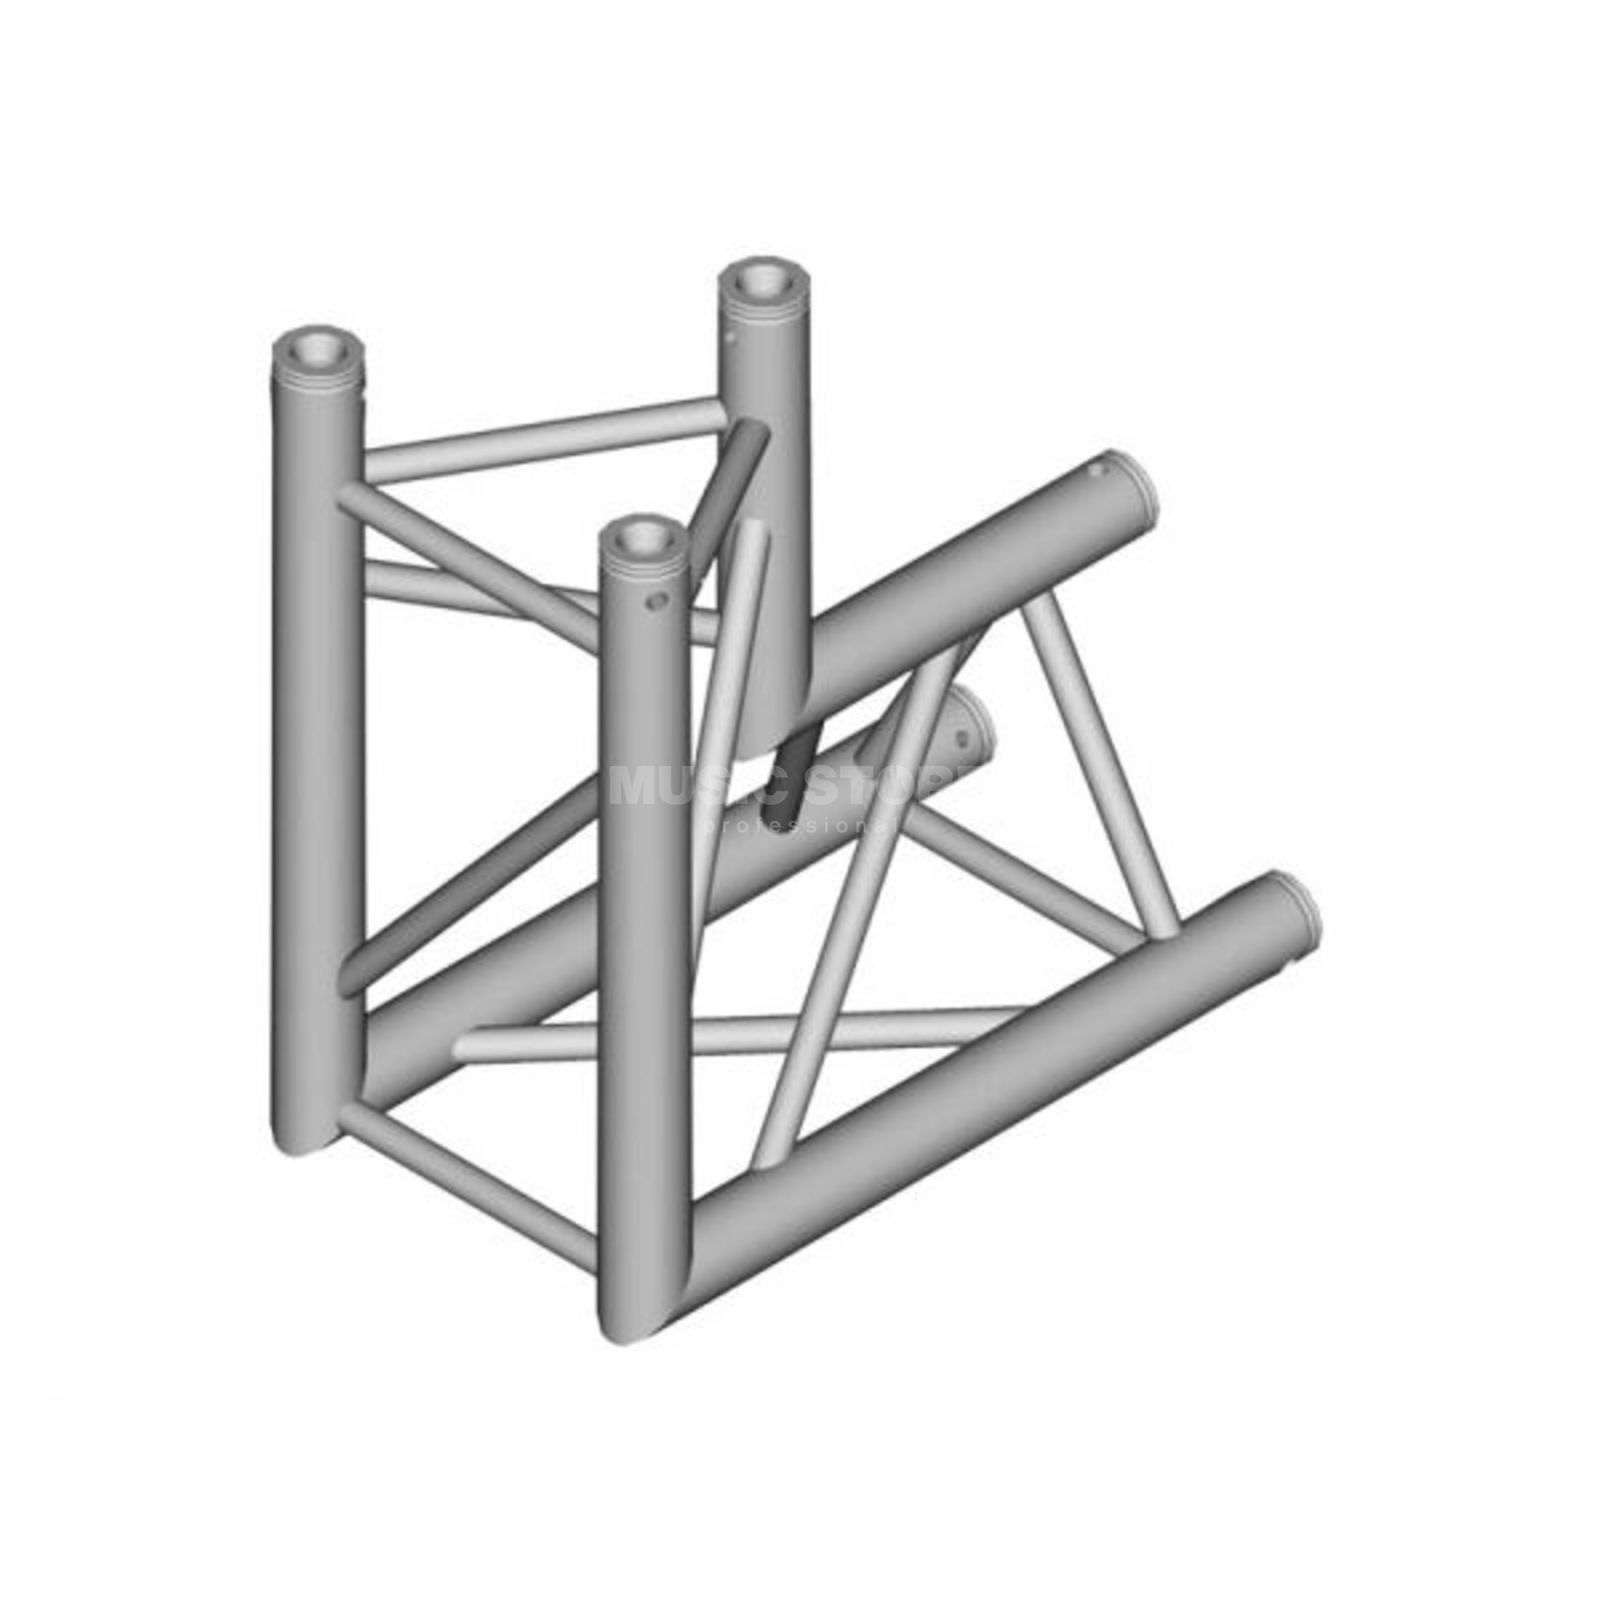 DURATRUSS DT 33-C25-D90 3-Point Truss 90° Corner Produktbillede